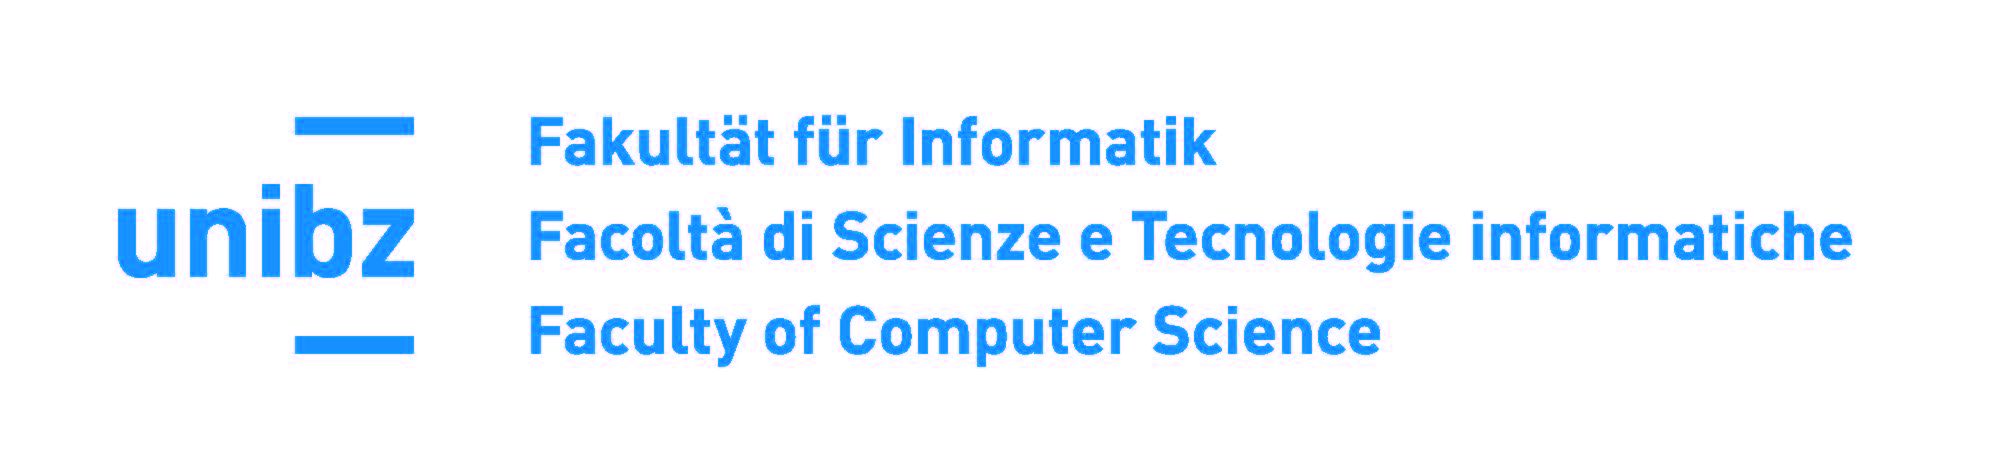 Free University of Bozen-Bolzano - Faculty of Computer Science